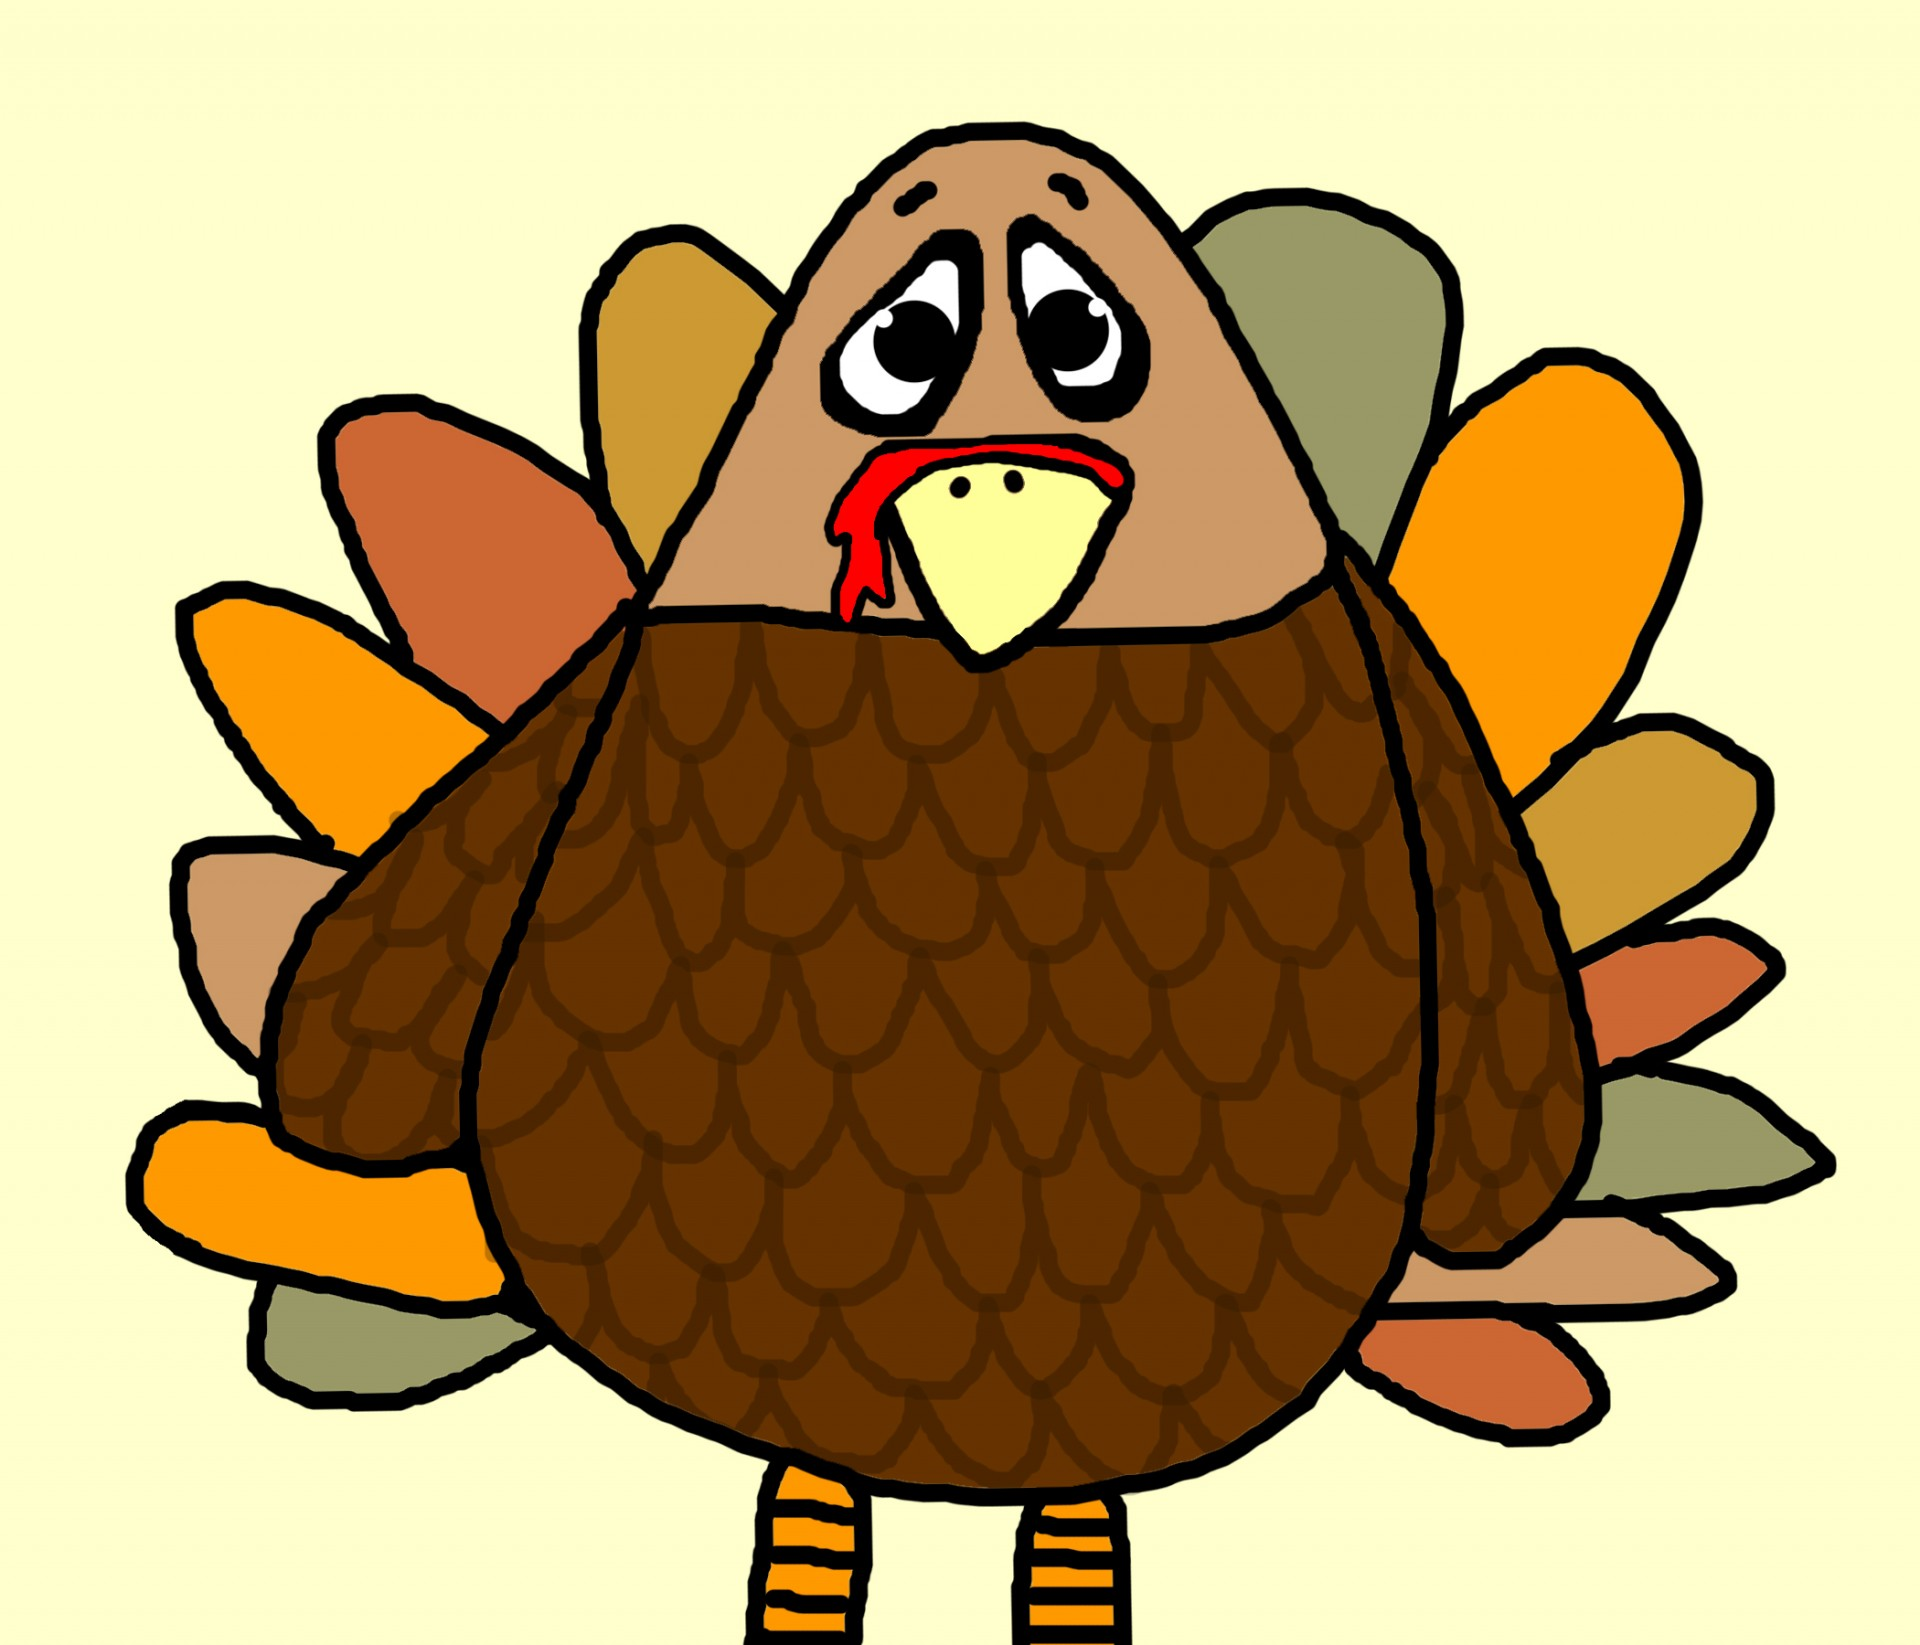 16 Sites, 3 Apps, 7 Projects for Thanksgiving